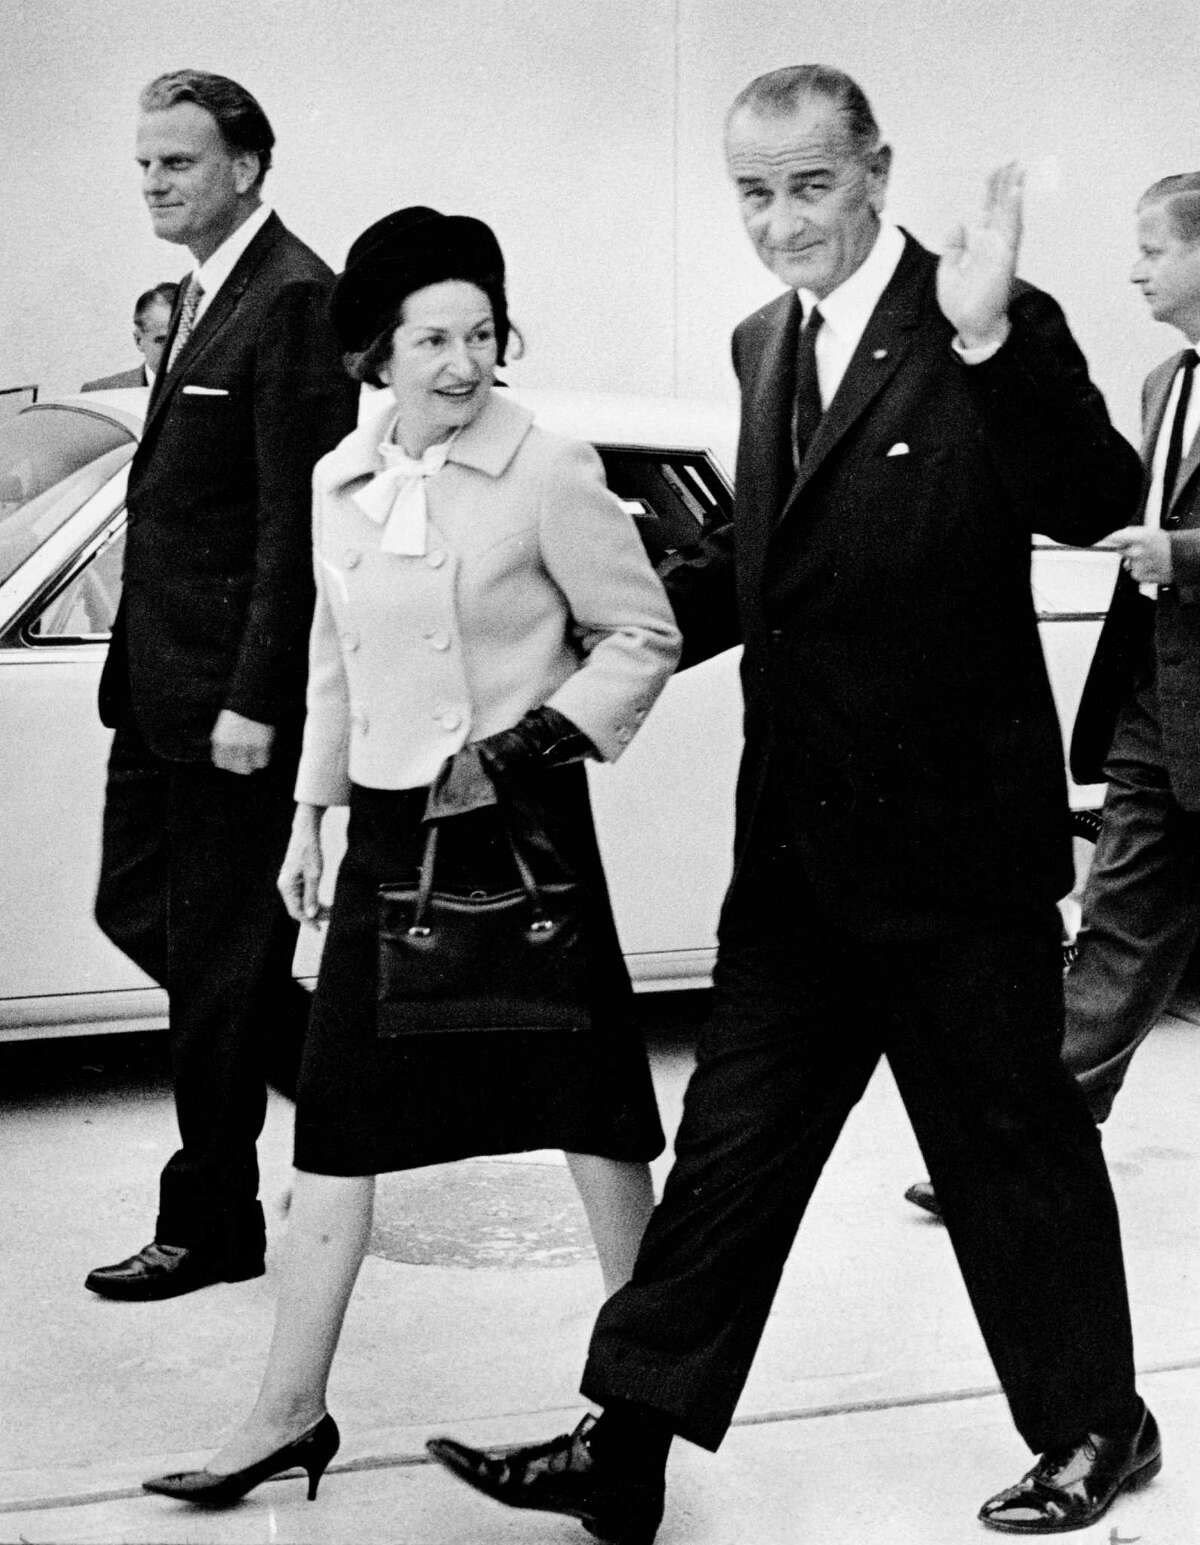 Lady Bird Johnson walks with President Lyndon Johnson and Rev. Billy Graham after an event in Houston on Nov. 25, 1965.